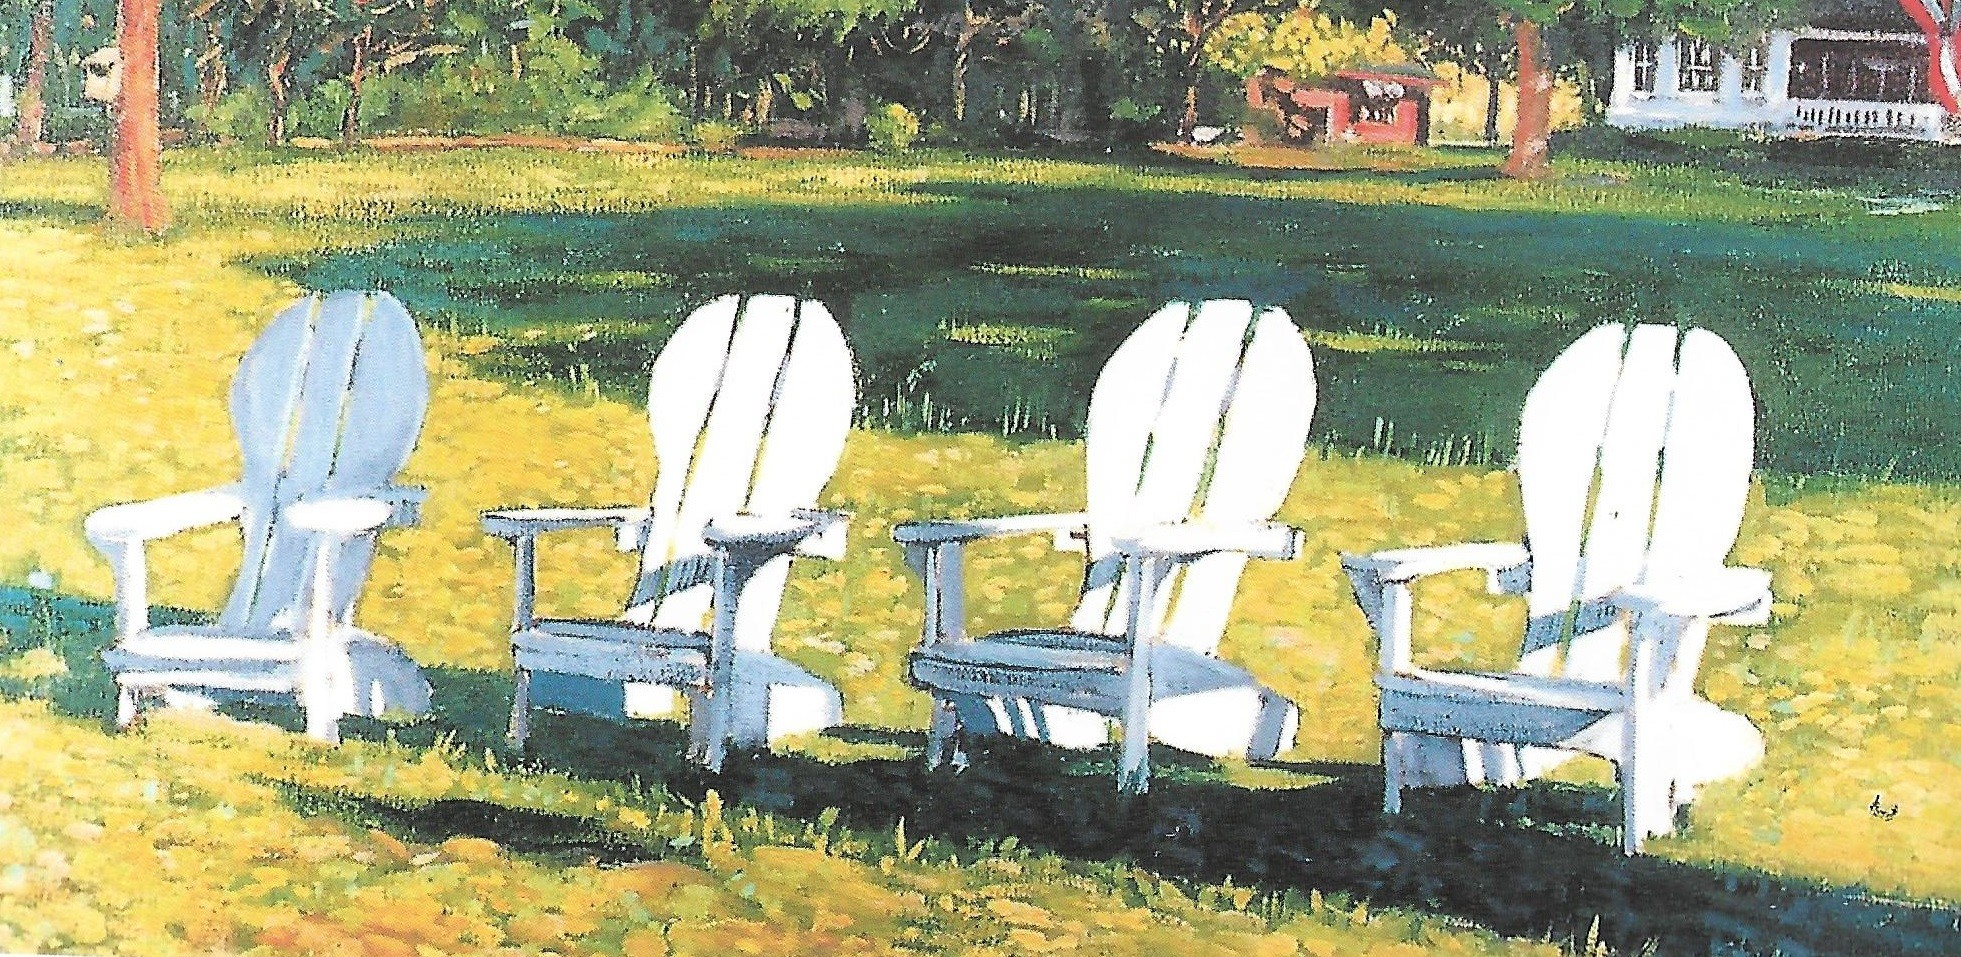 Tibbie's Chairs, oil on canvas by Stig Marcussen